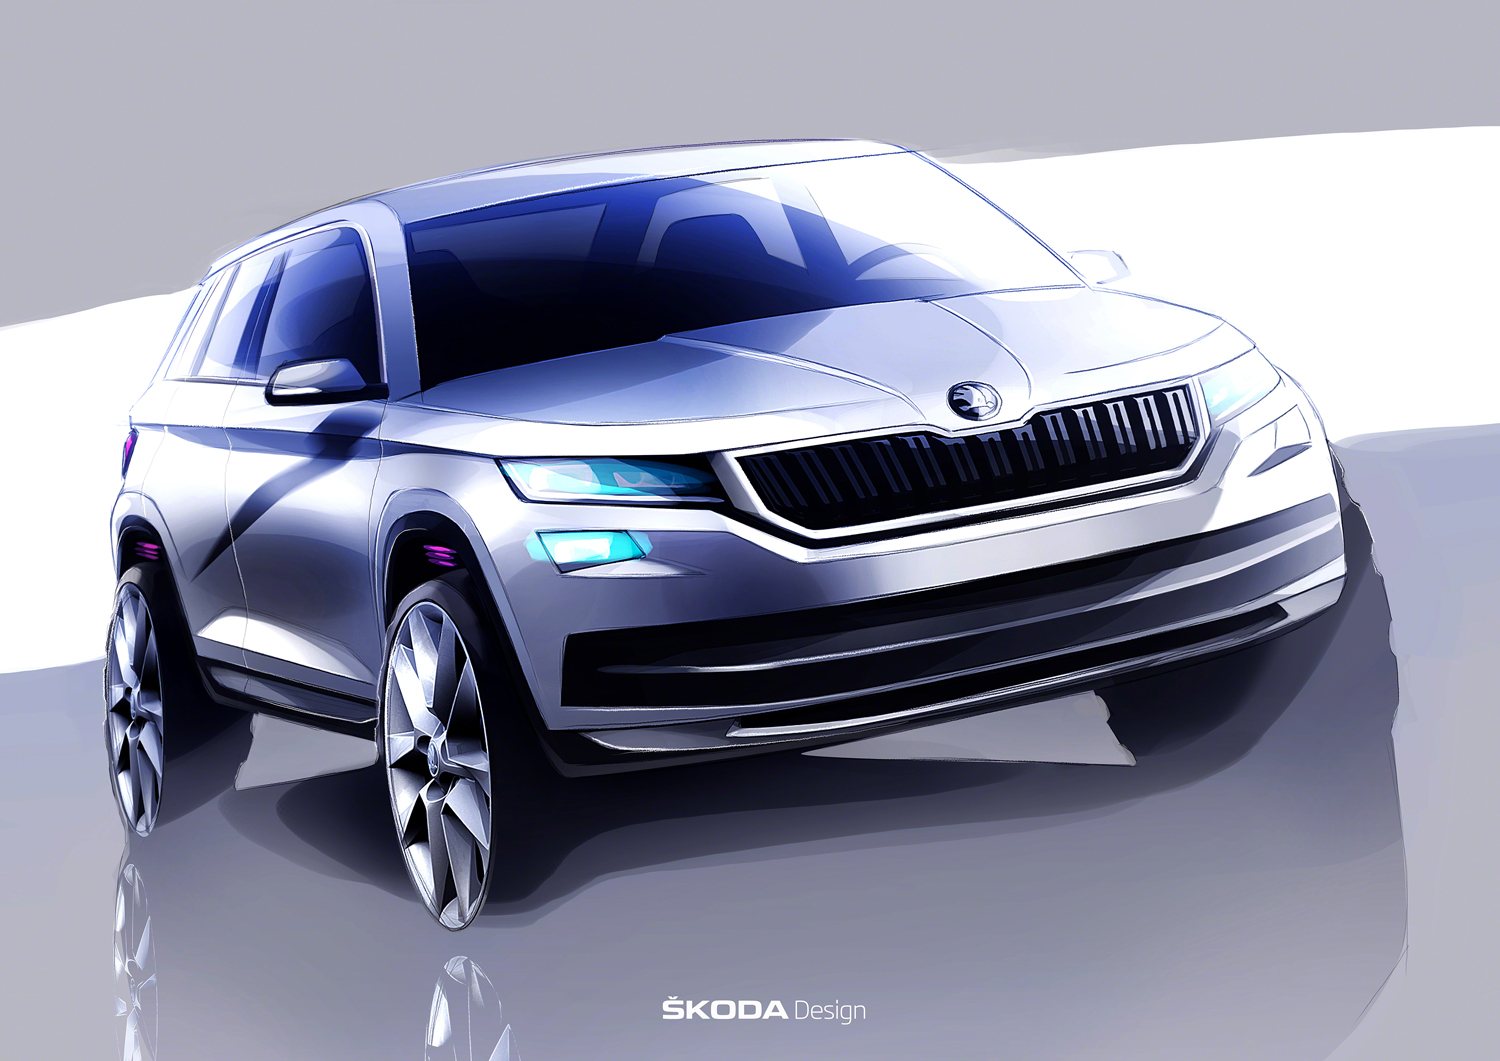 skoda previews new kodiaq suv carscoops. Black Bedroom Furniture Sets. Home Design Ideas